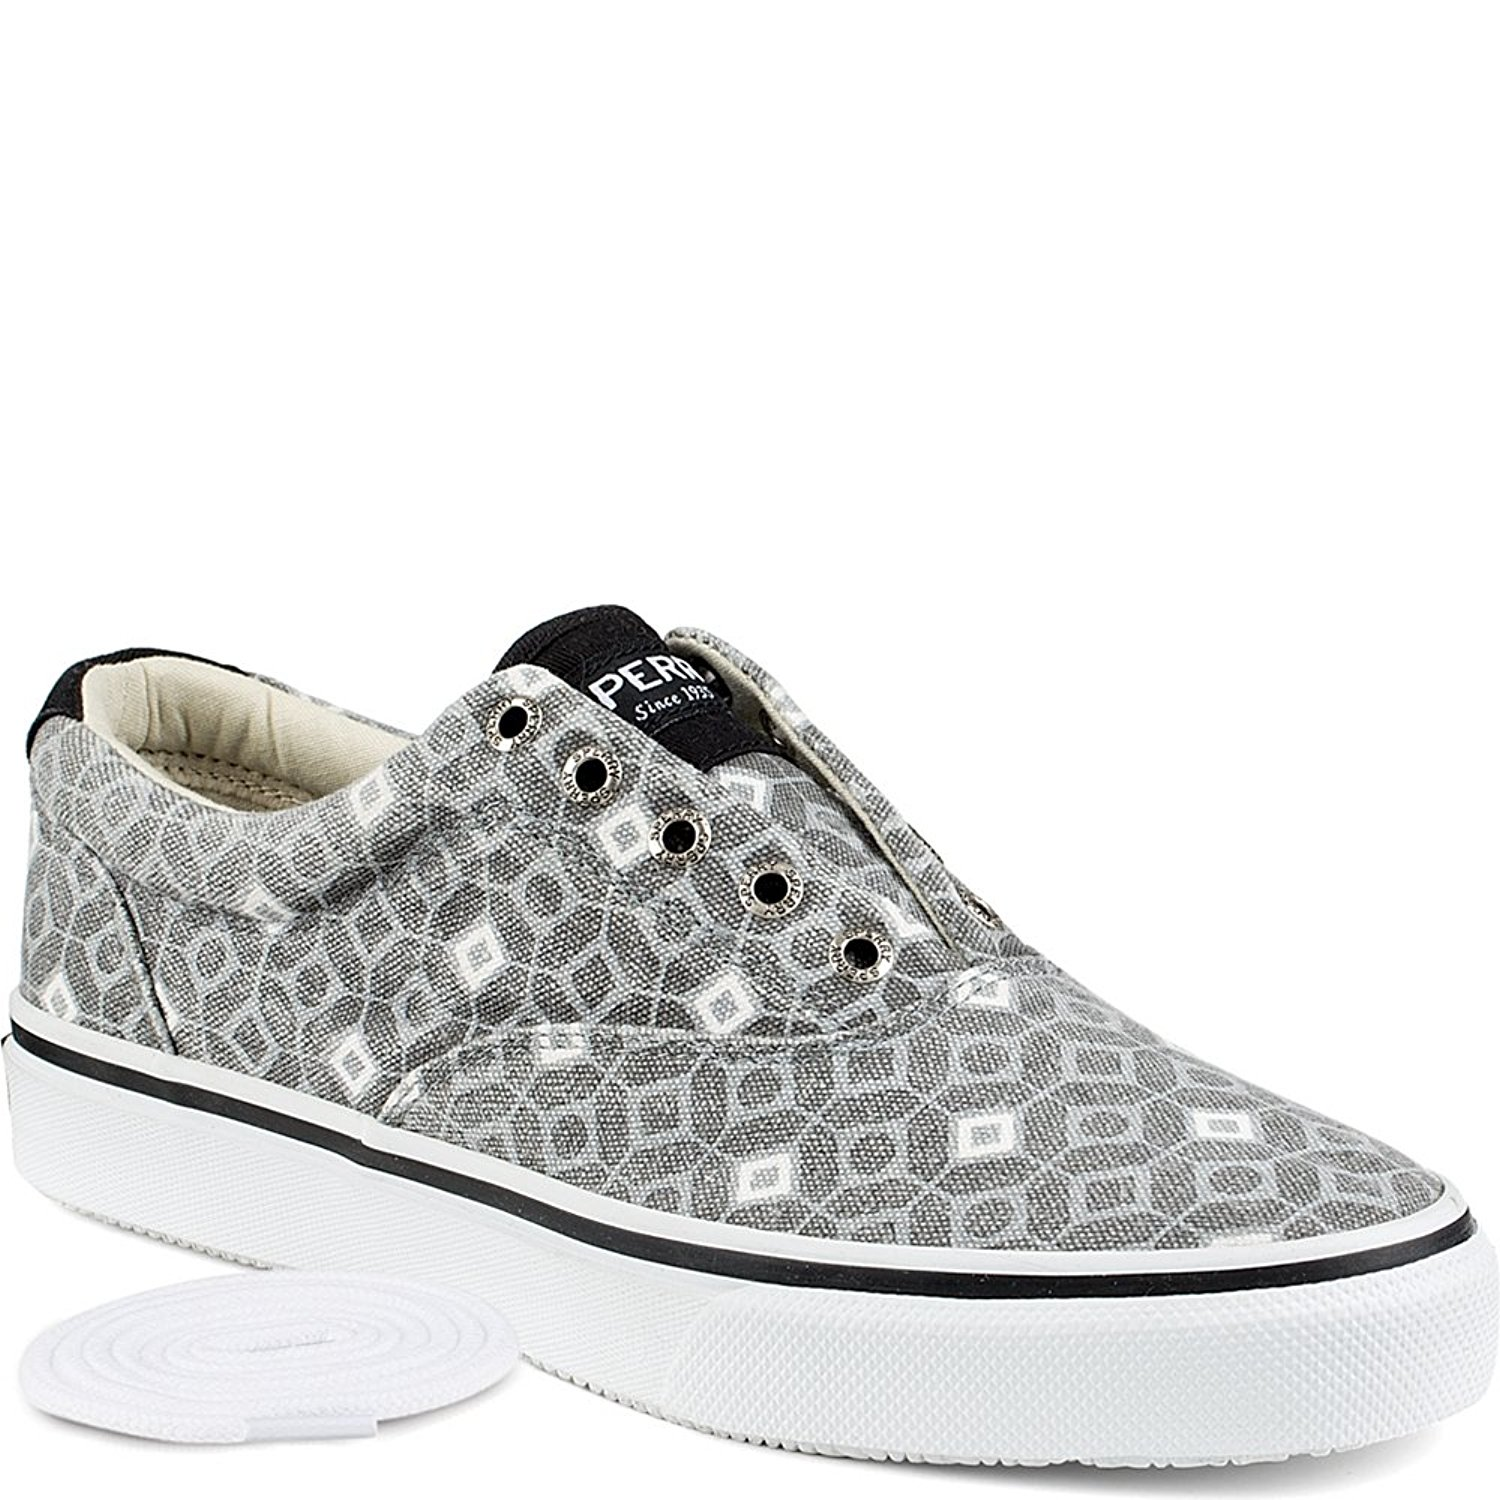 867e3de205d7 Details about Sperry Top-Sider Men s Striper LL CVO Fashion Sneakers Tile  Grey White